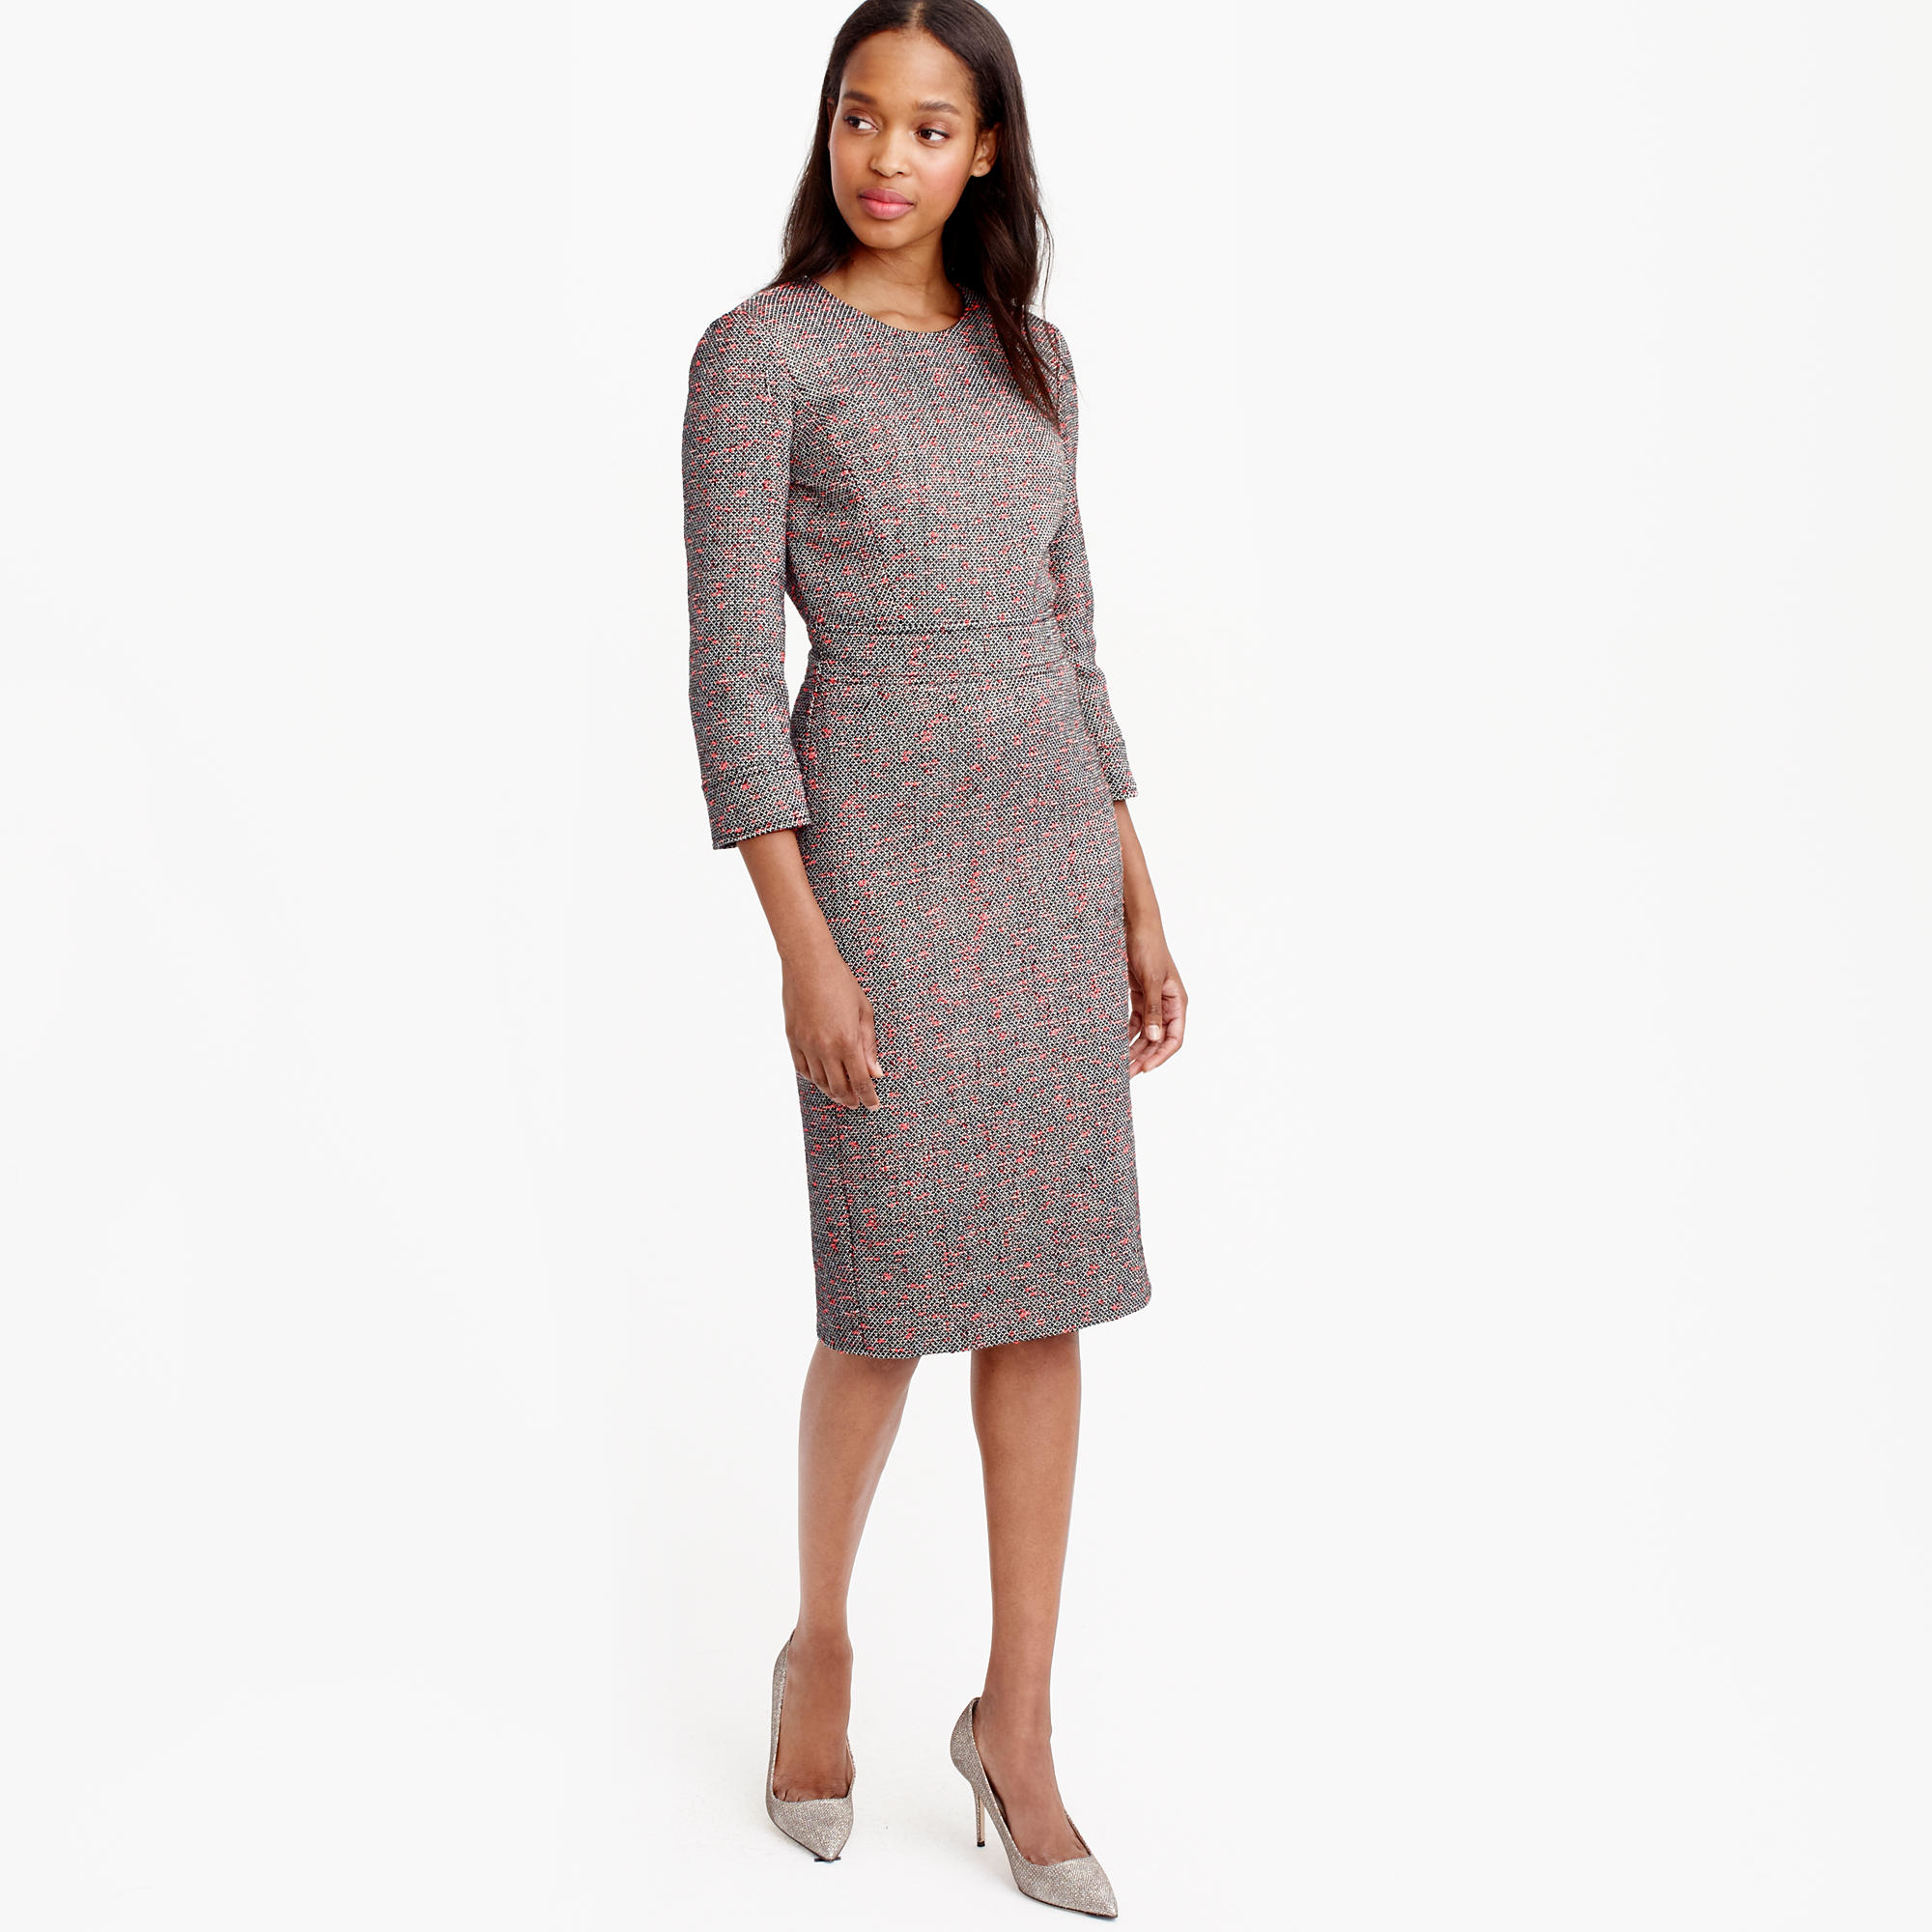 Flounce Hem Dress Shift Dress Petite Long Sleeve Hollowed-out Beaded HUSKARY Womens Long Sleeve Loose Plain Maxi Pockets Dresses Casual Long Dresses. by HUSKARY. $ - $ $ 13 $ 18 48 Prime. FREE Shipping on eligible orders. Some sizes/colors are Prime eligible. out of .